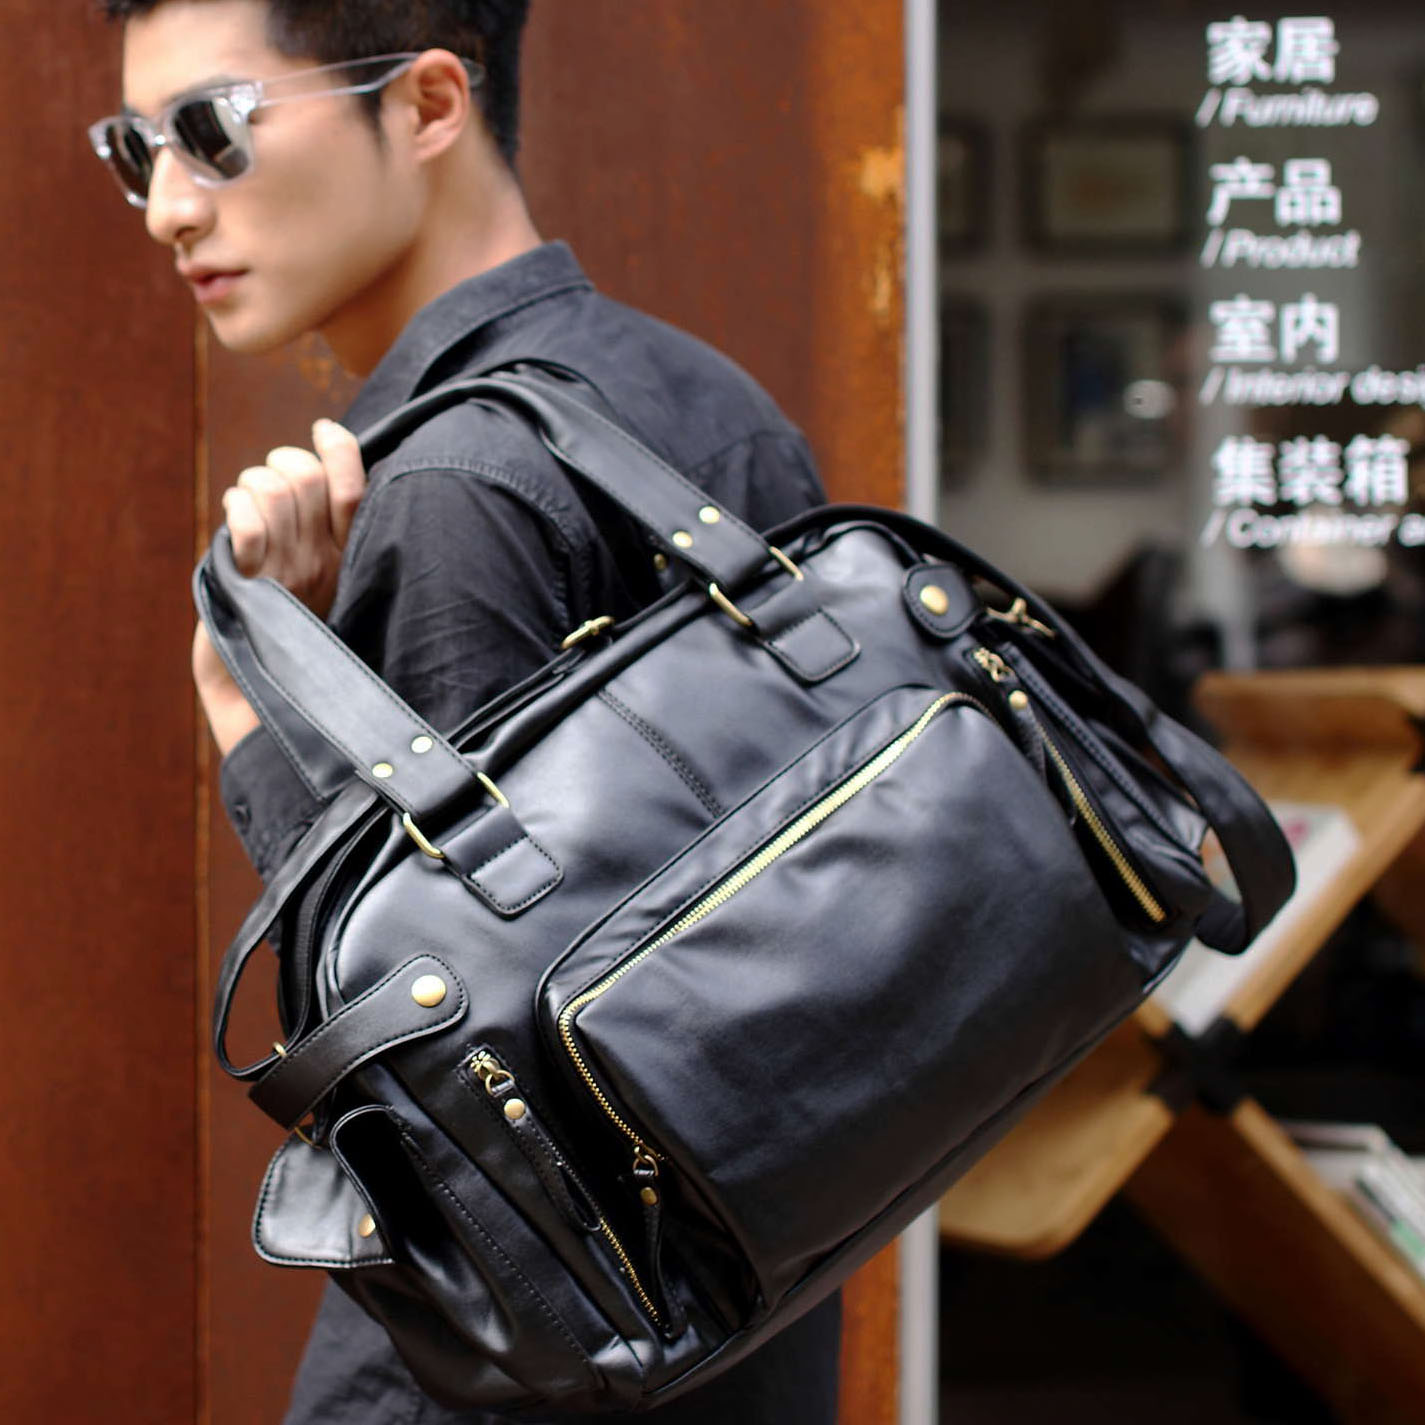 New male bags PU handbag messenger bag casual man commercial travel bag for business/daily/trip use black brown,free shipping new shoulder casual bag messenger bag canvas man travel handbag for male trip daily use grey khaki black color fashion